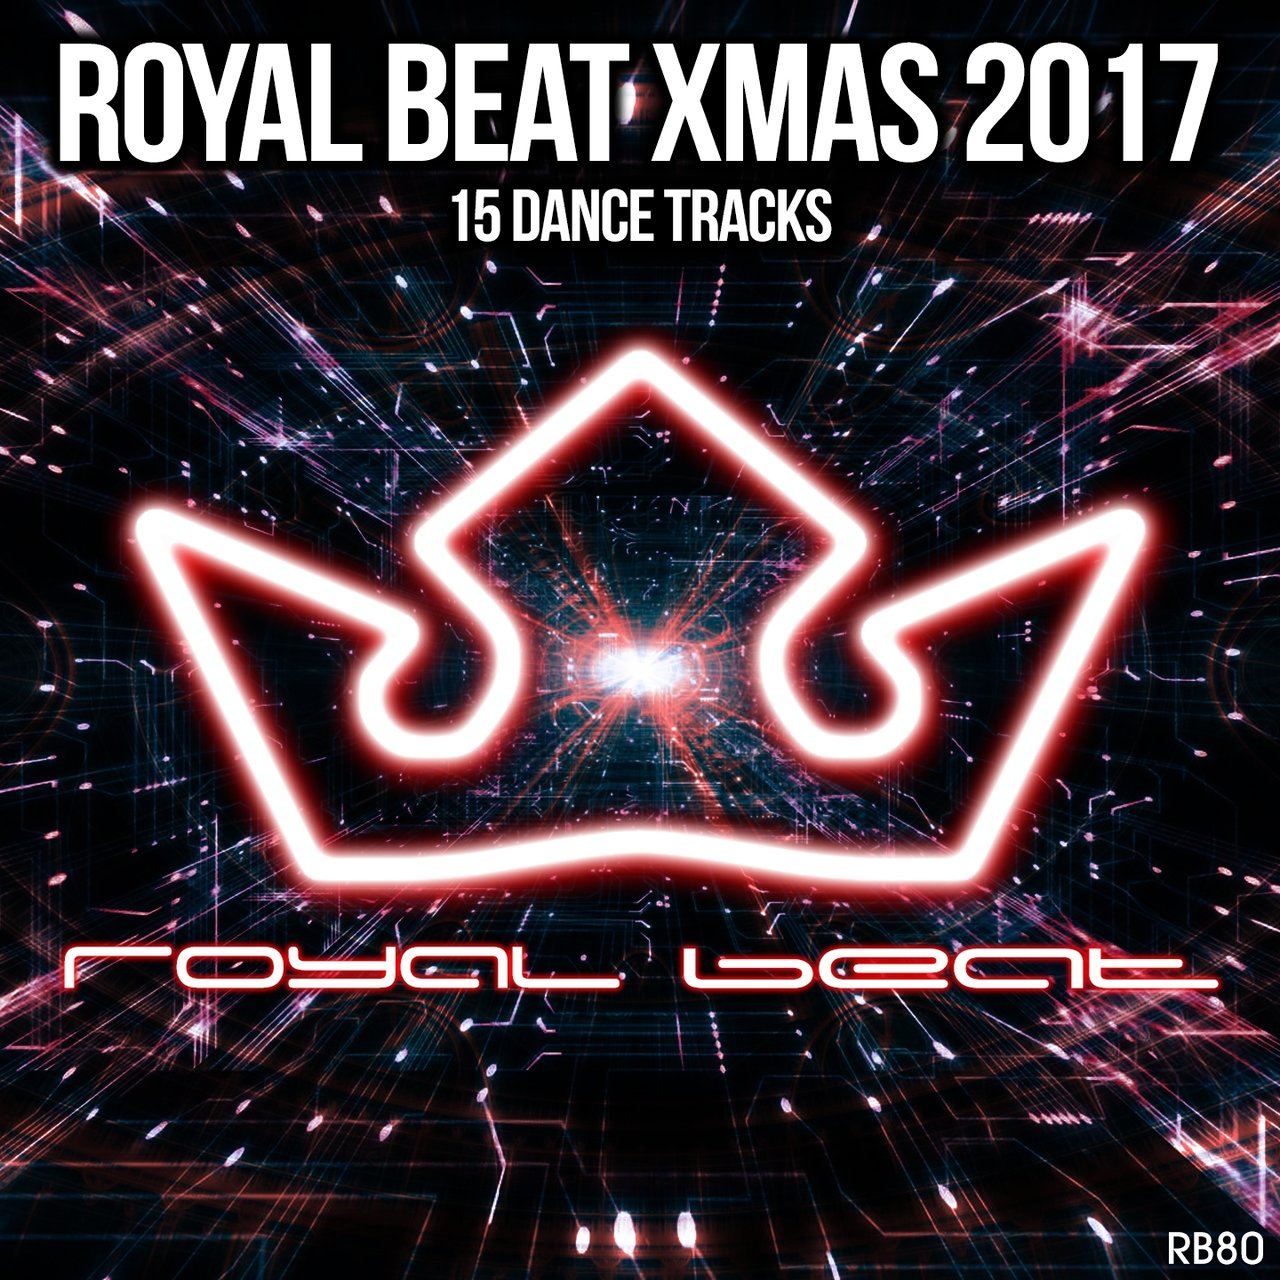 Royal Beat Xmas 2017